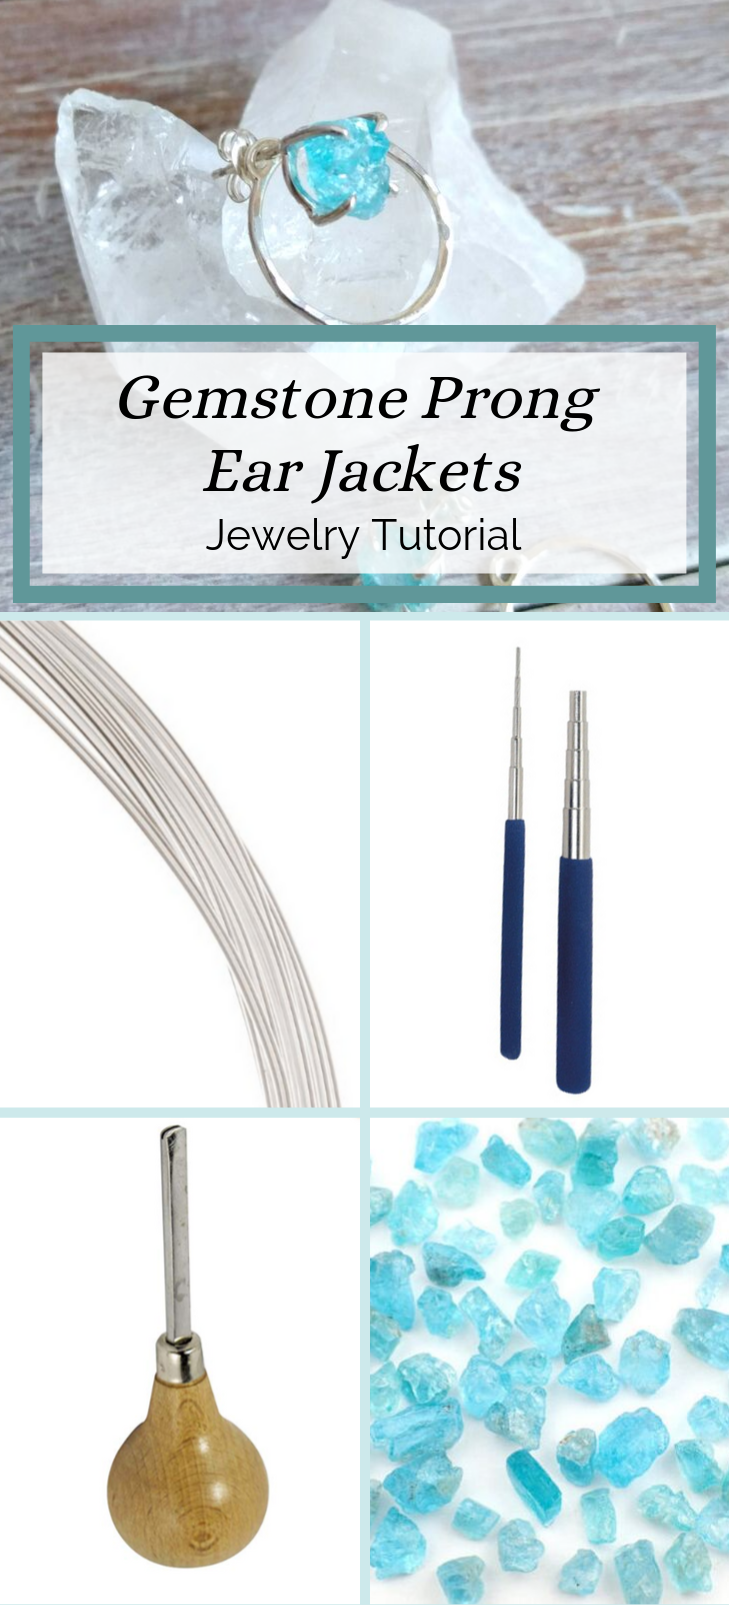 Gemstone-Prong-Ear-Jackets-Tutorial.png